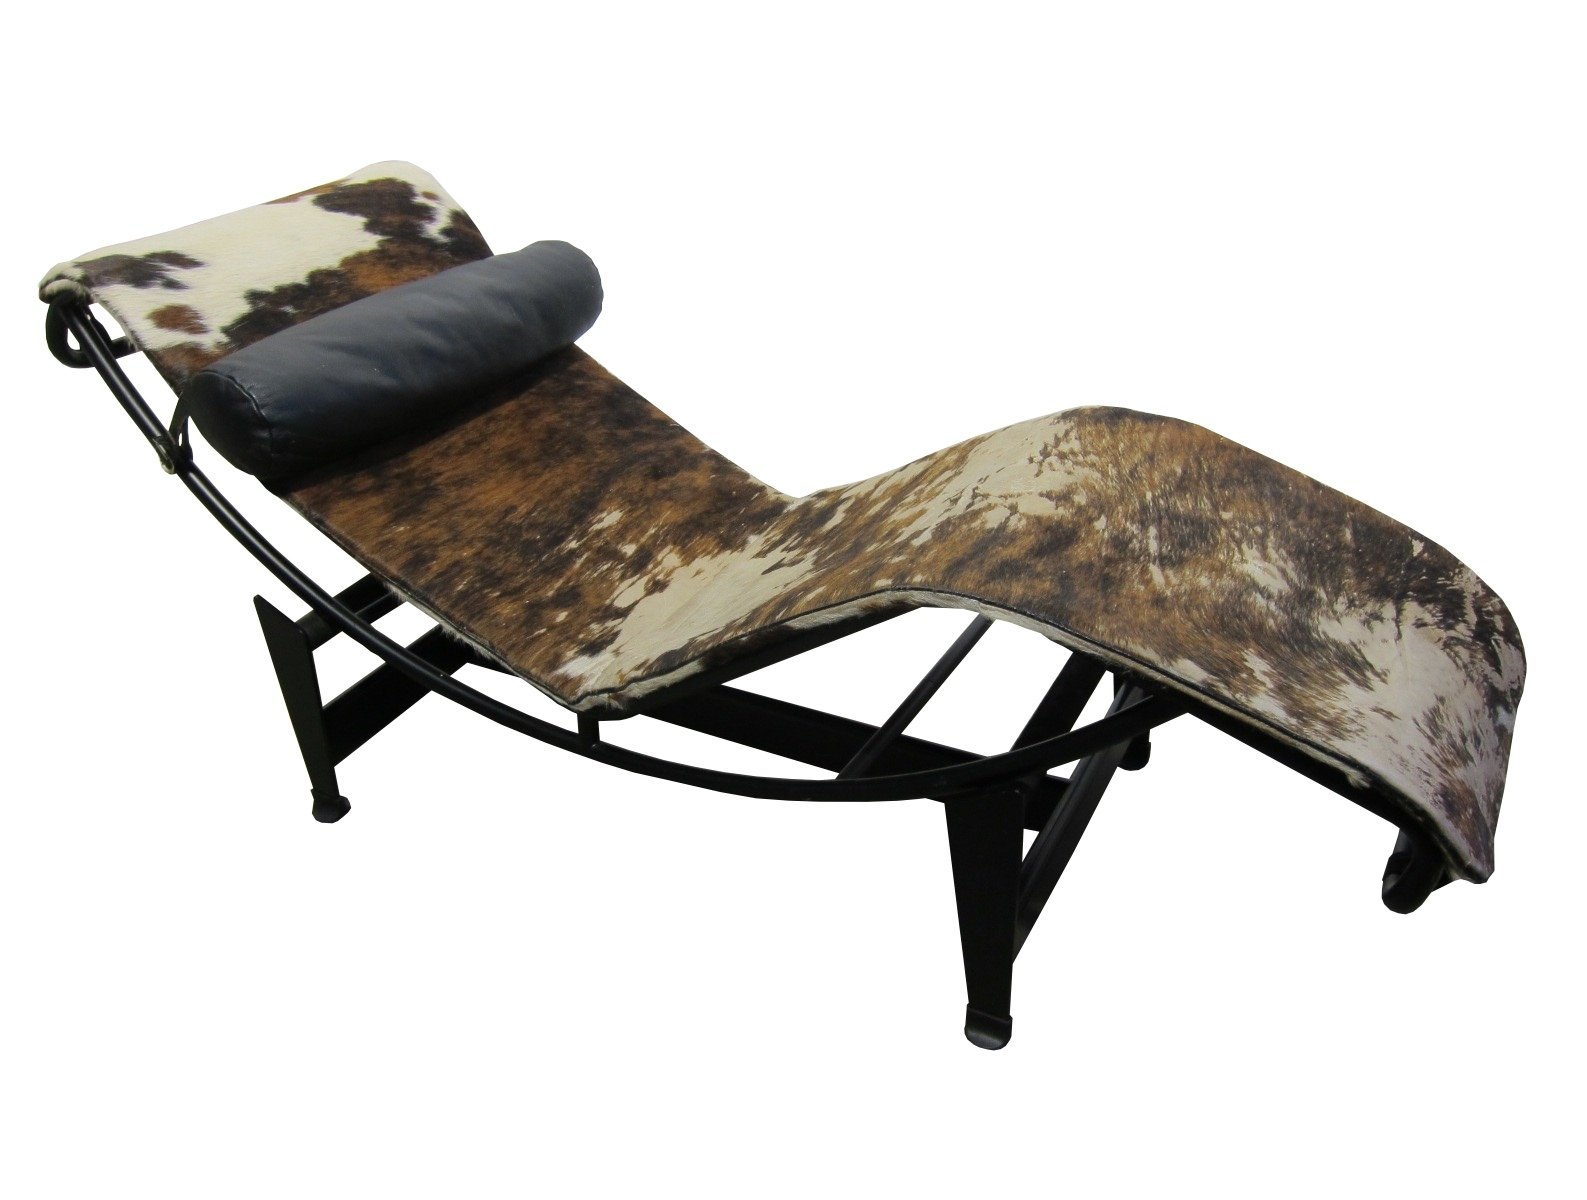 Vintage lc4 39 chaise longue 39 in cowhide by le corbusier for for Cassina le corbusier lc4 chaise longue